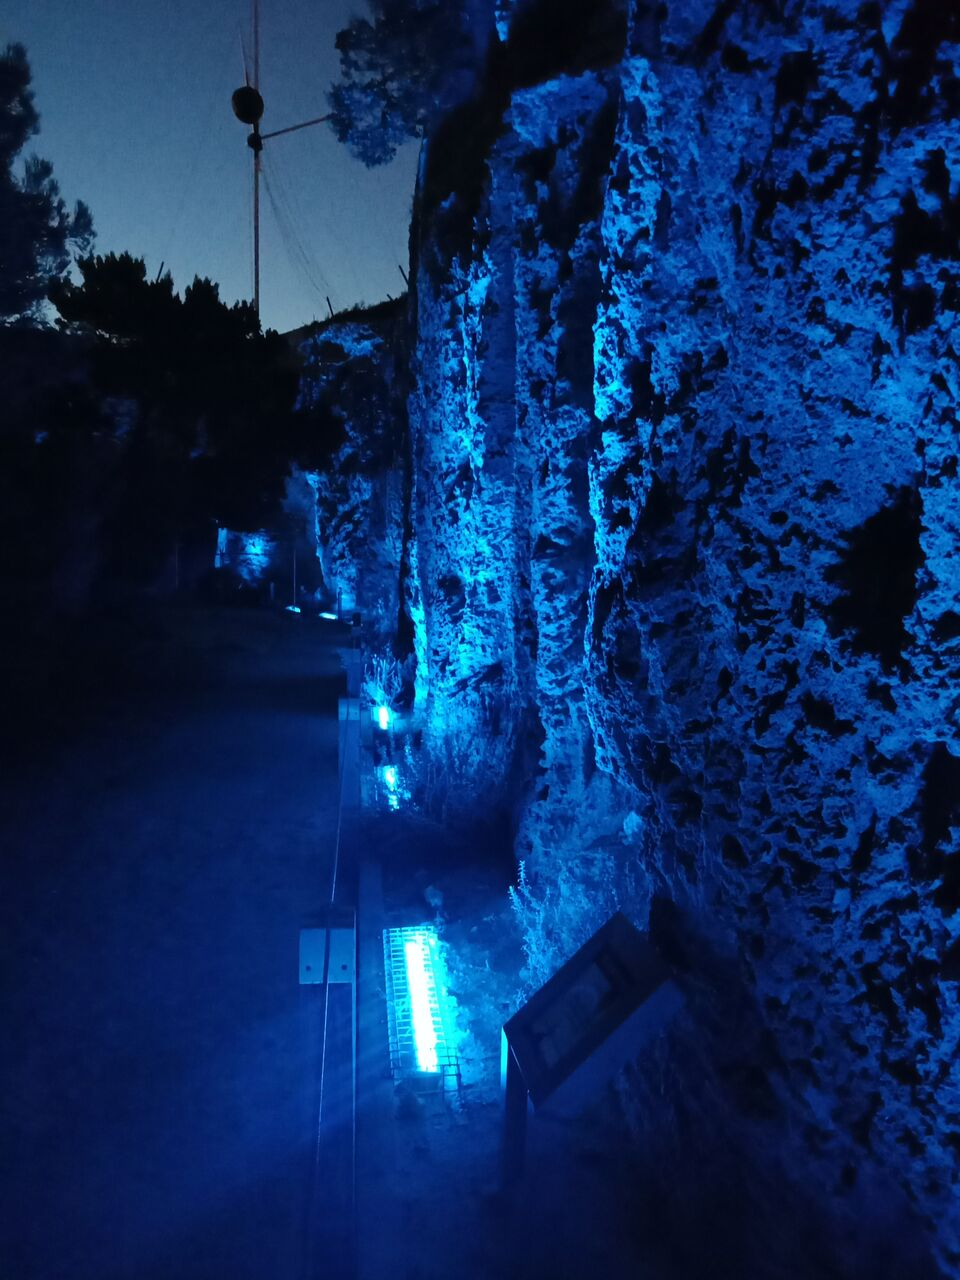 Rock wall and blue lights